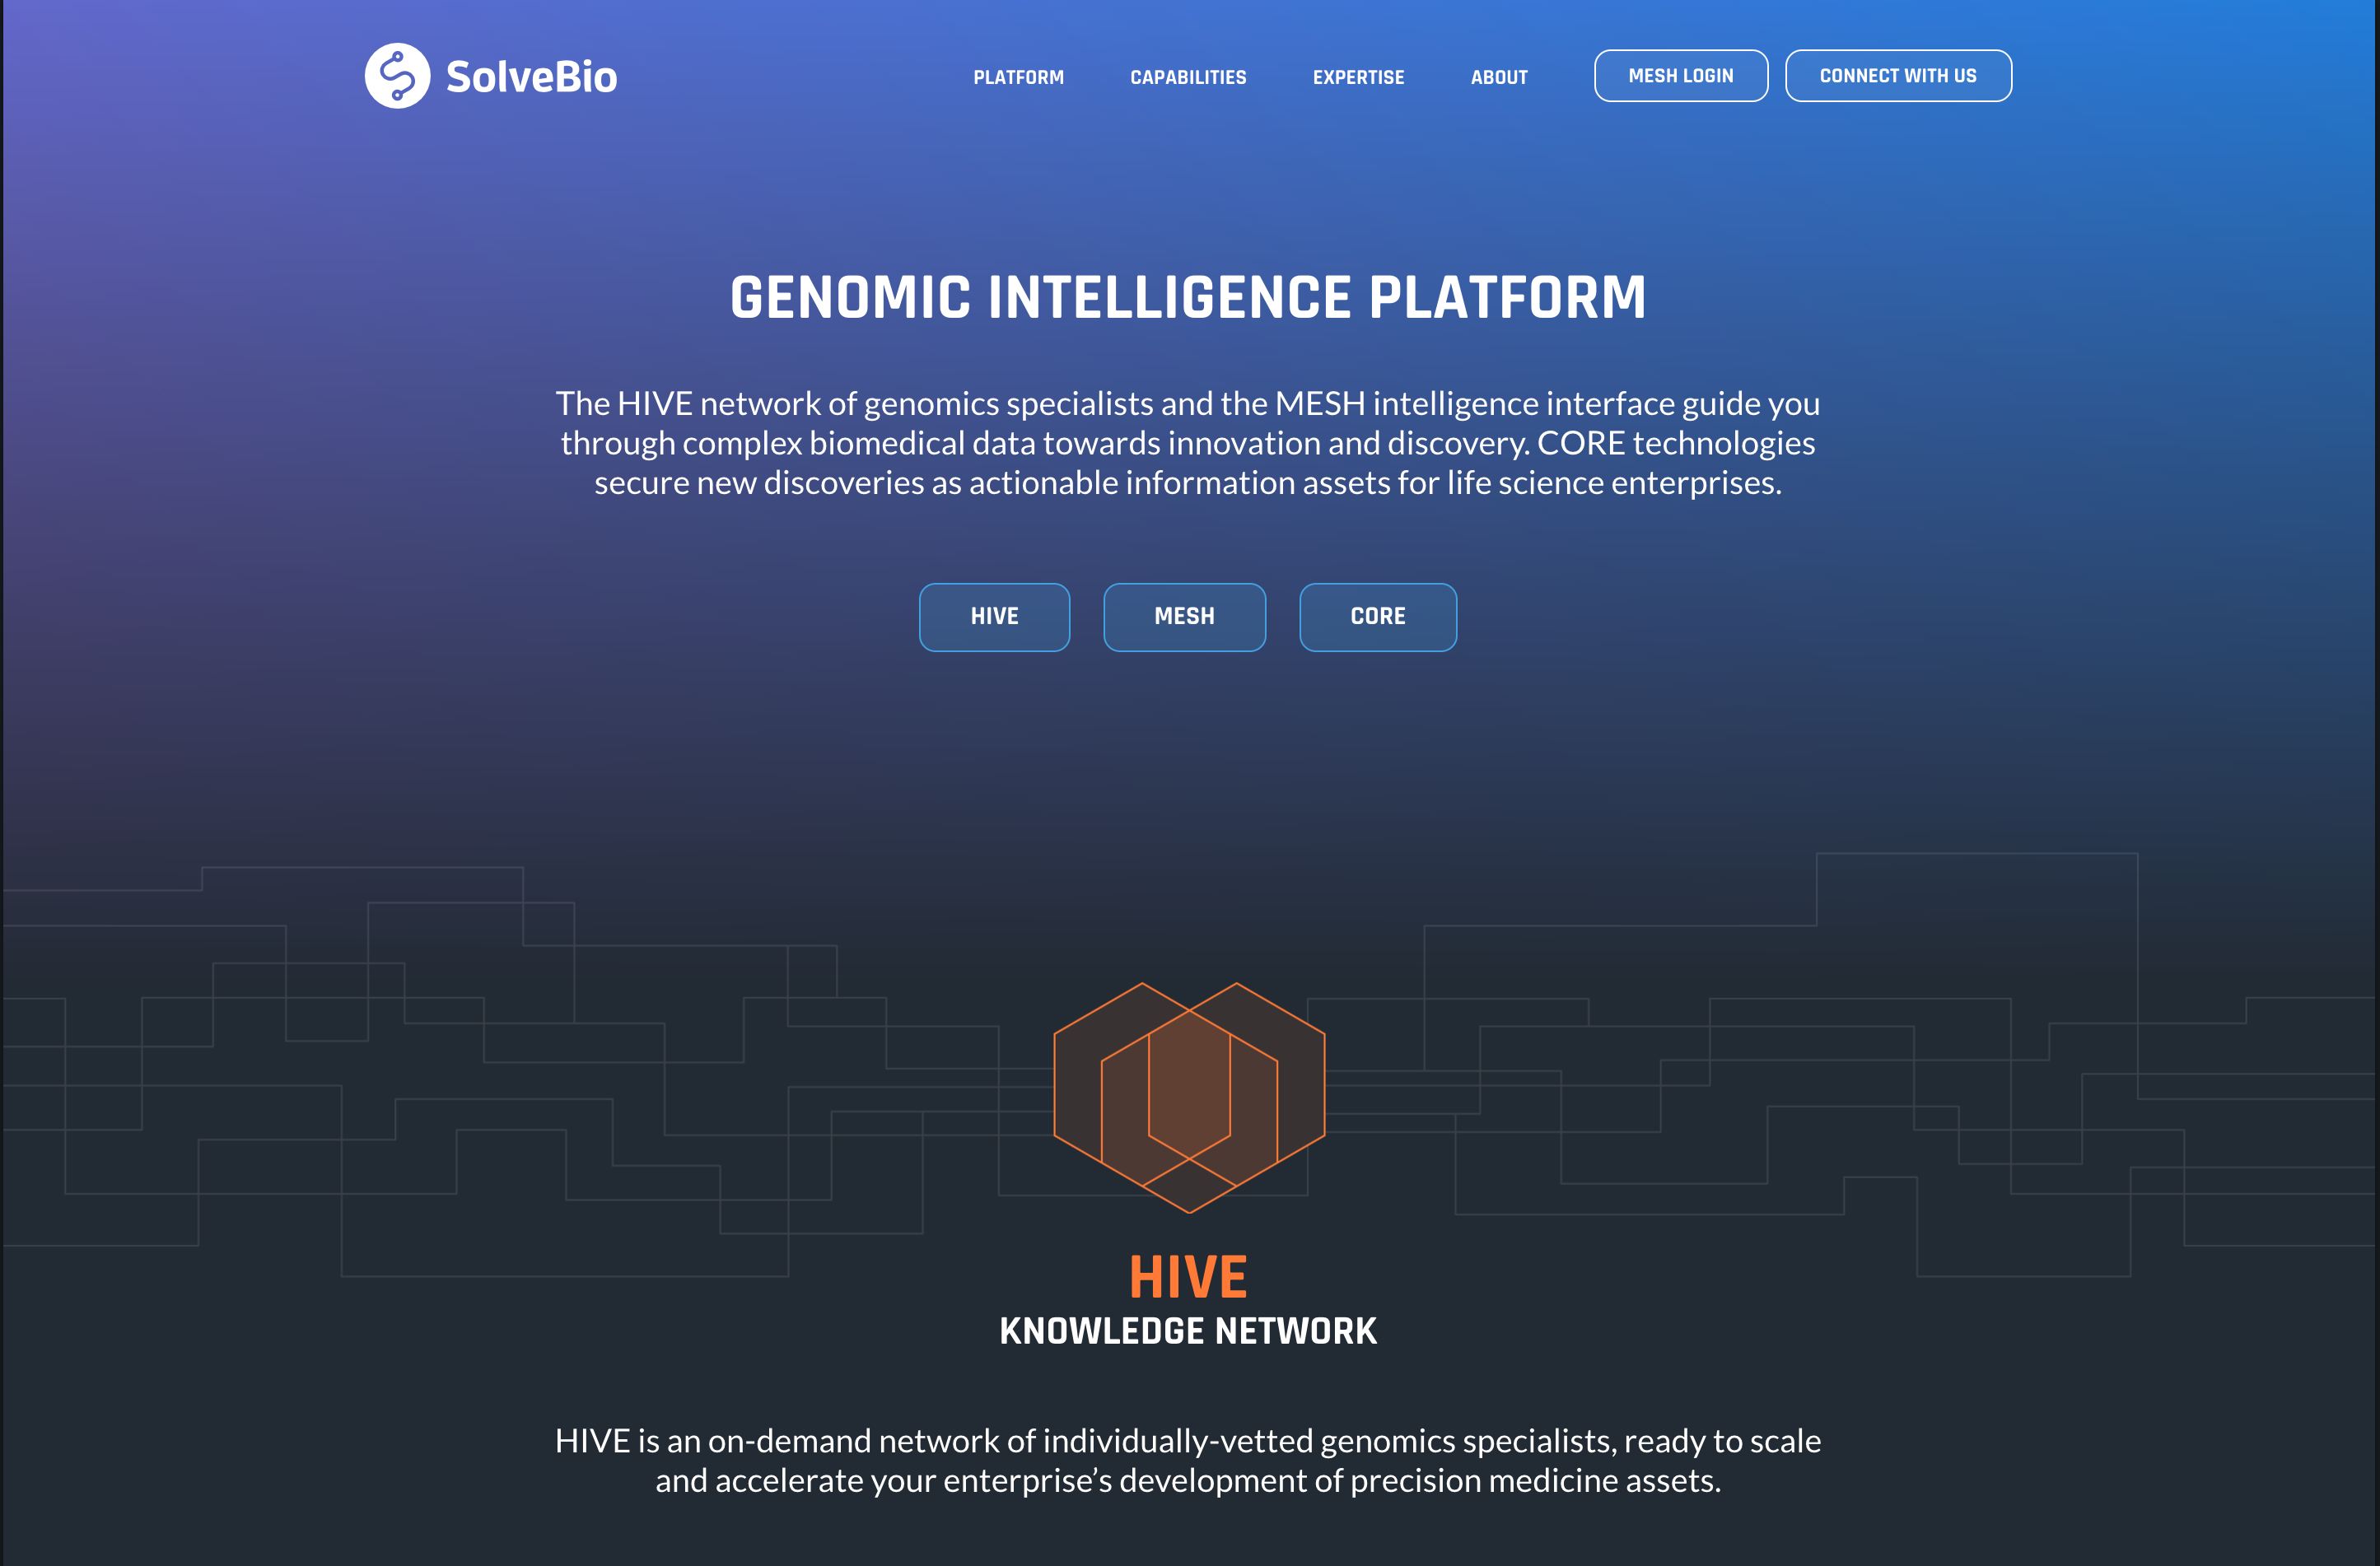 The SolveBio Platform now integrated with even Bridges